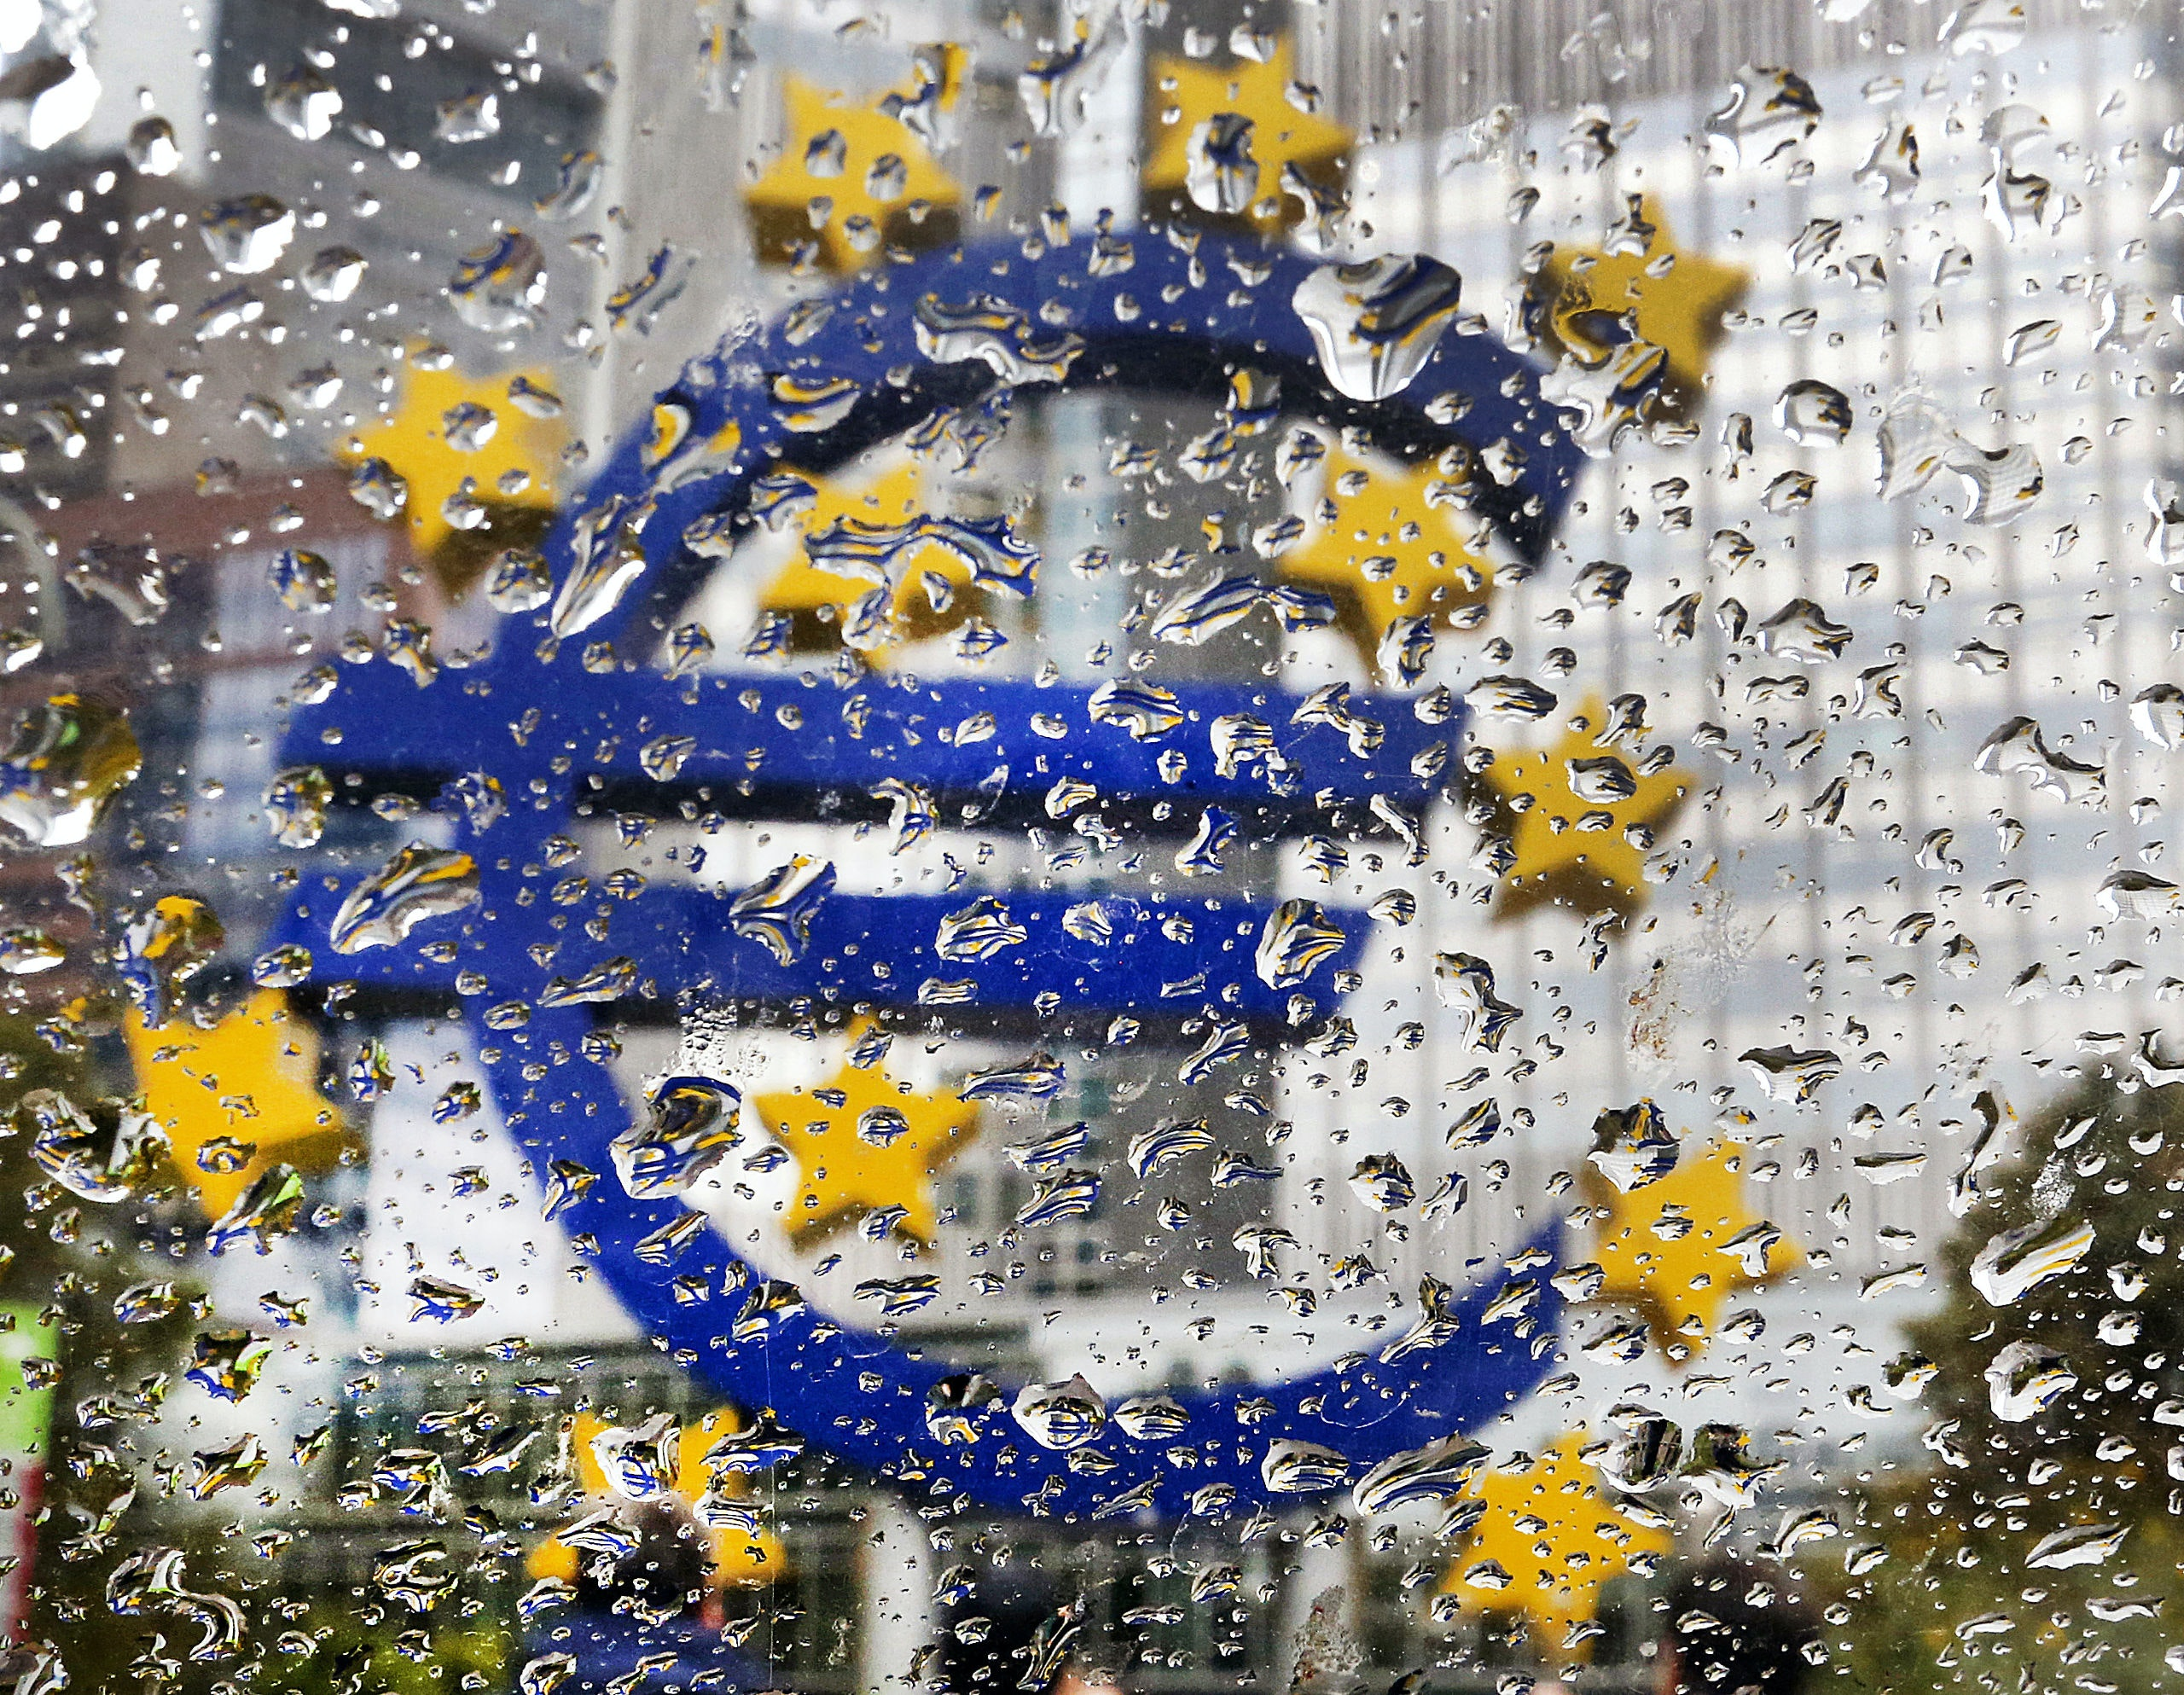 The Euro sculpture in front of the old European Central Bank is photographed behind rain drops on a window in Frankfurt, Germany, Tuesday, Oct. 18, 2016. The governing council of the ECB will meet on Thursday. (AP Photo/Michael Probst)